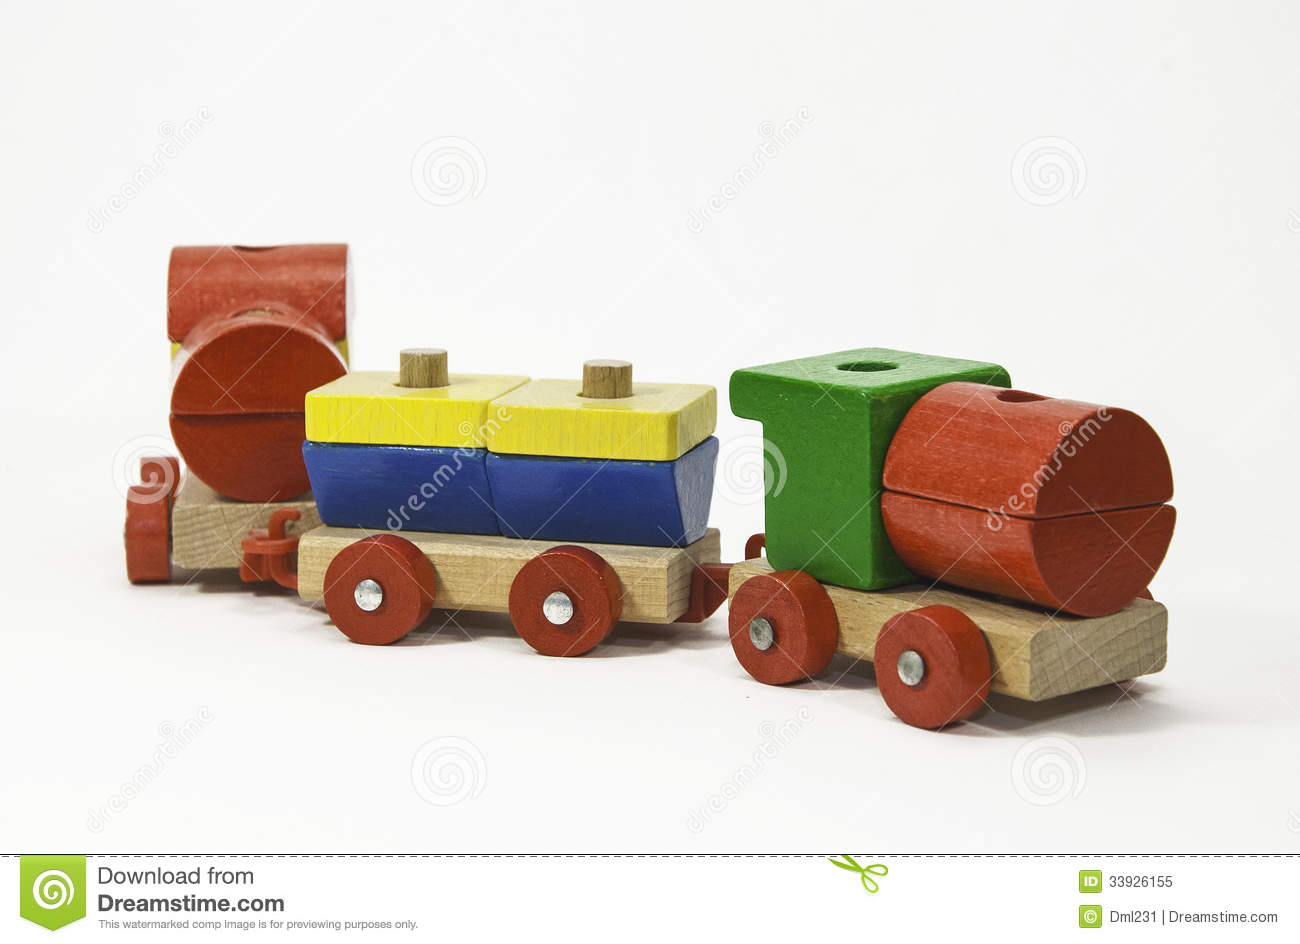 Wooden toy train painted in primary colors of red, green, blue, and ...